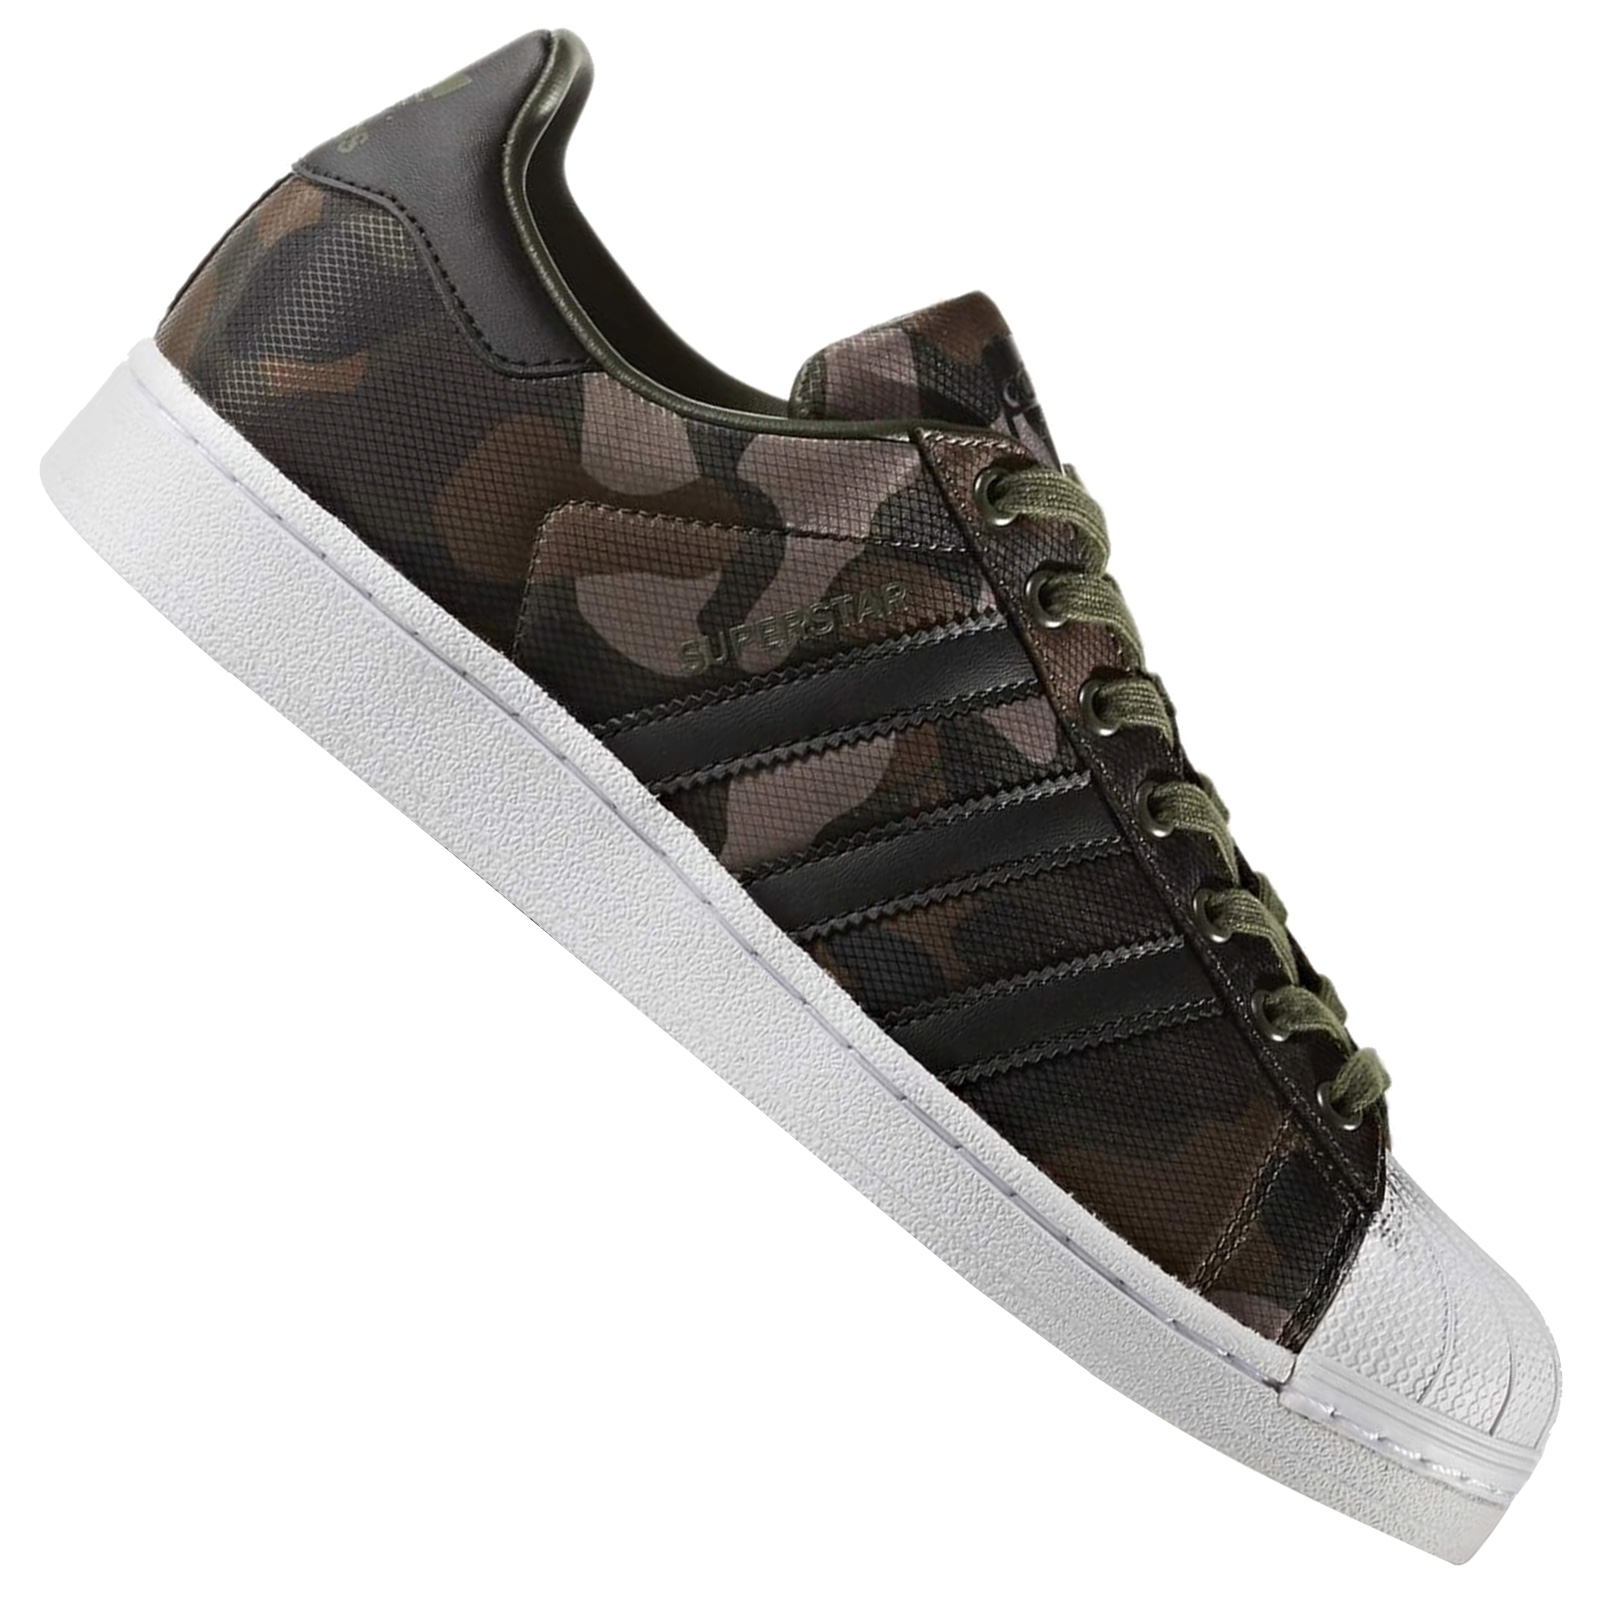 adidas superstar camouflage sneakers